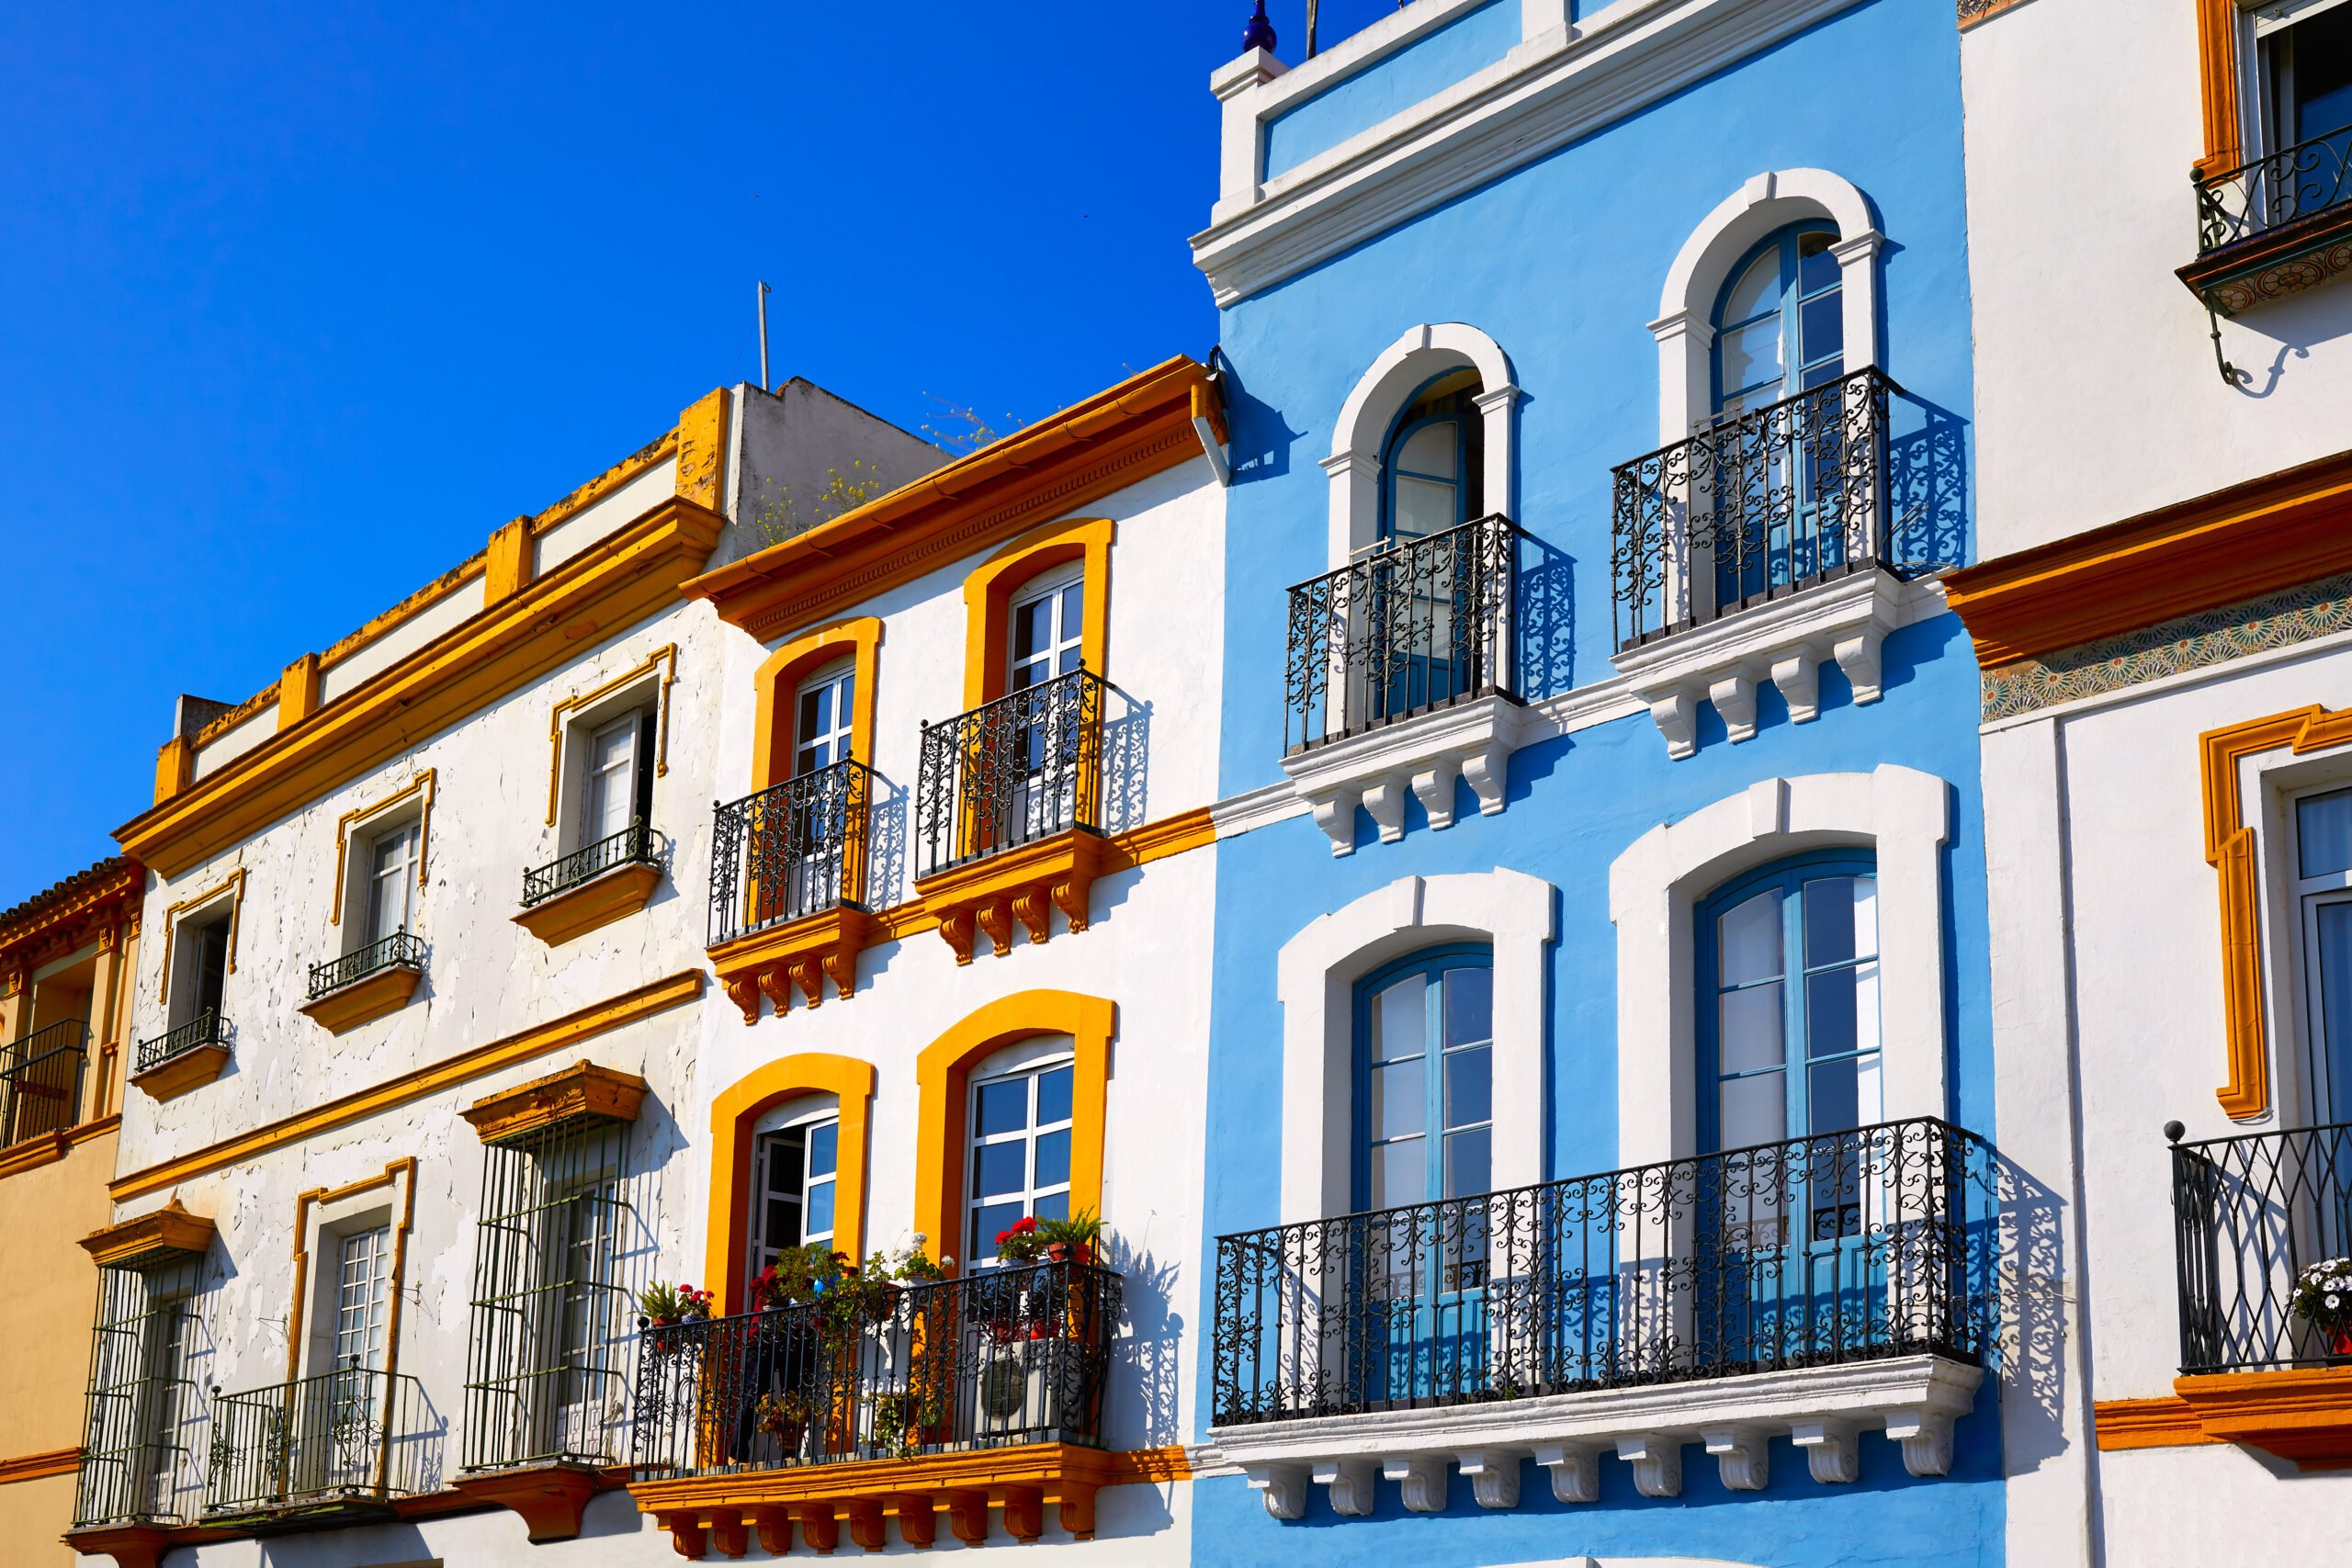 Admire The Colorful Facades Of Triana On The Tapas And Flamenco Experience In Seville